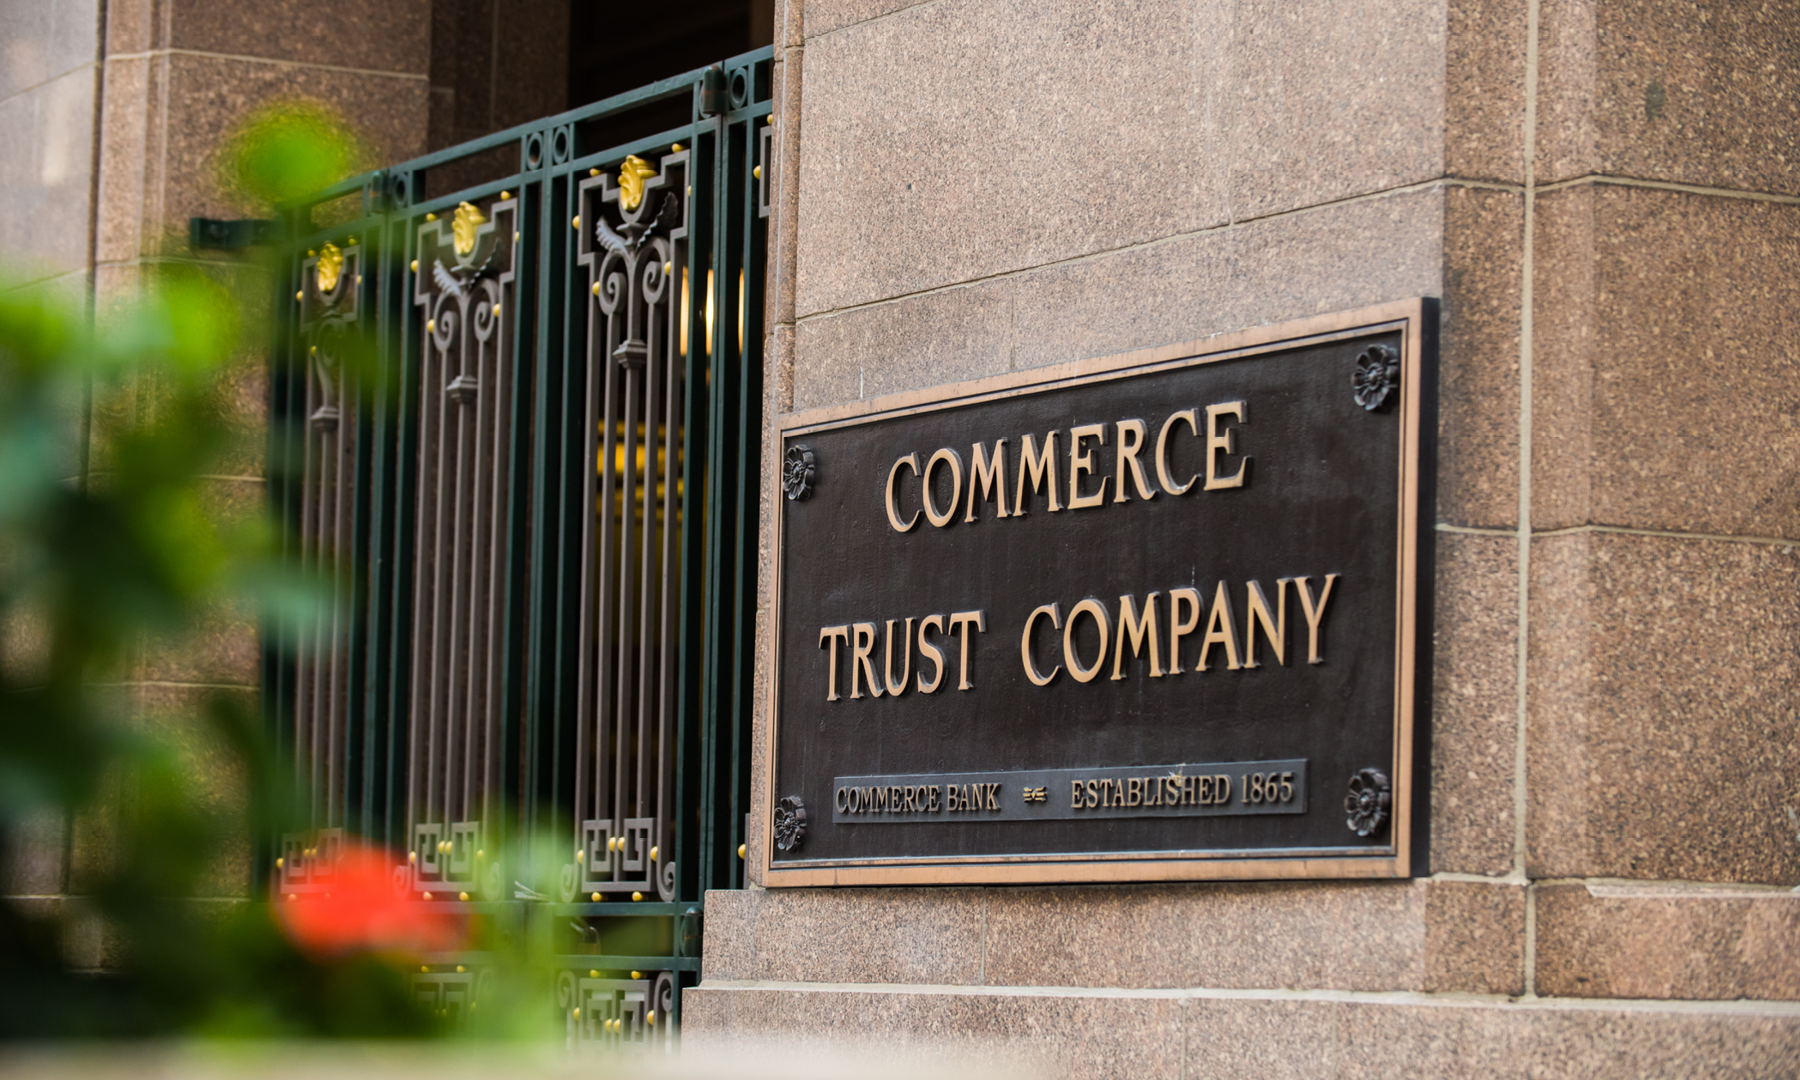 Commerce Trust Company building plaque